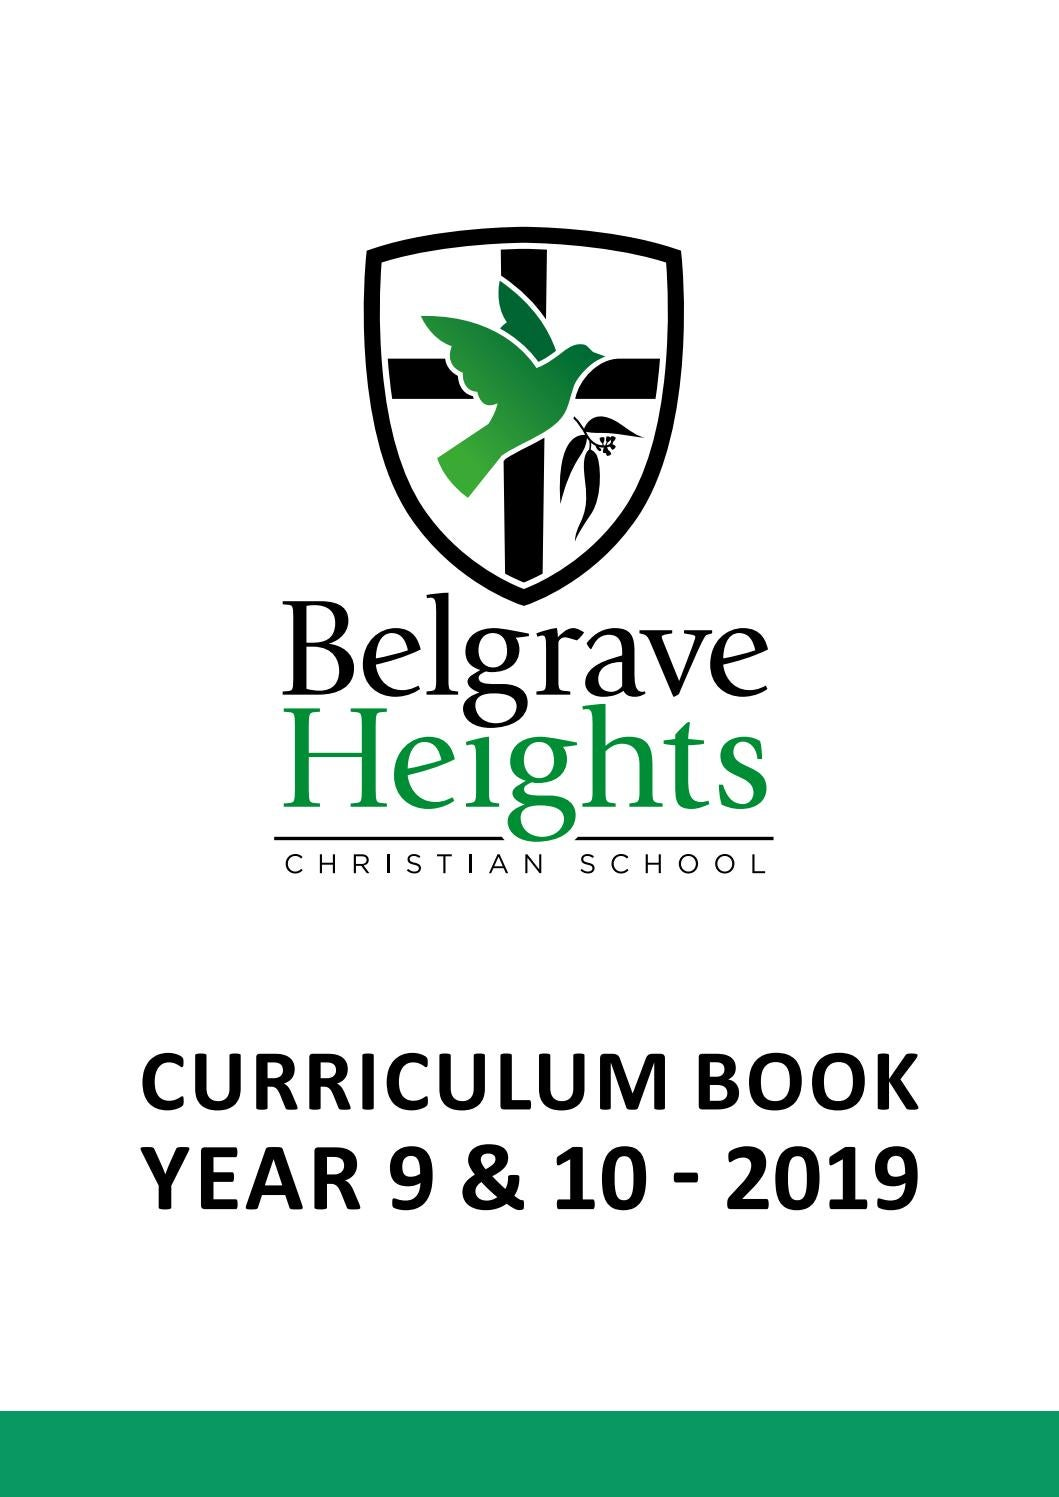 Year 9/10 Curriculum Book by Belgrave Heights Christian